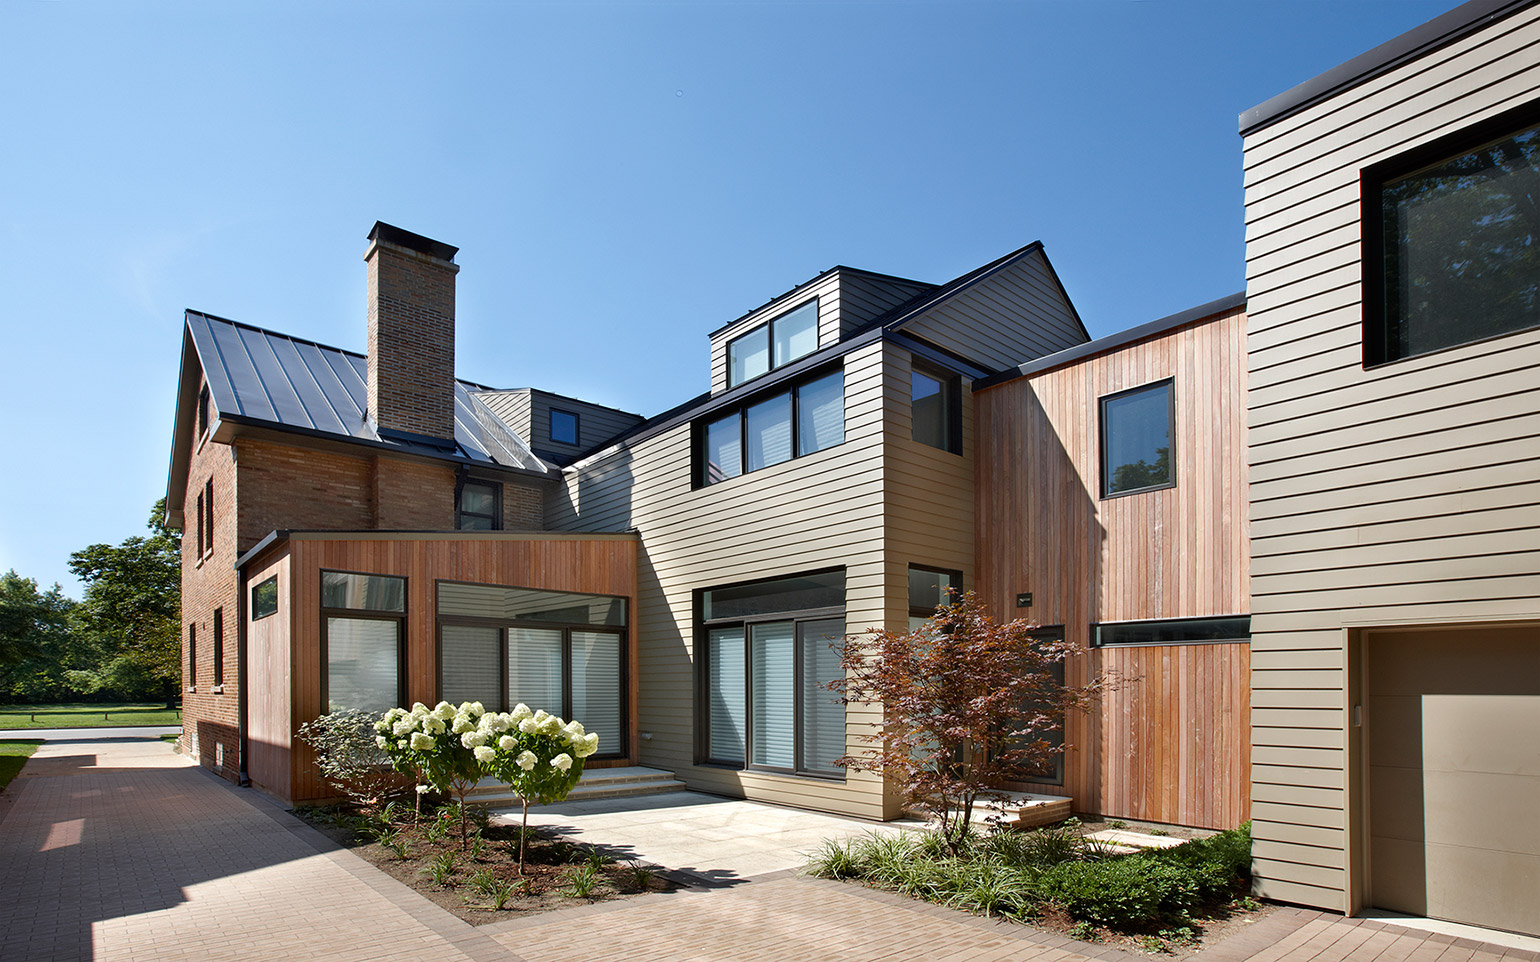 Modern_Sustainability_Content_2_Rear_Exterior.jpg